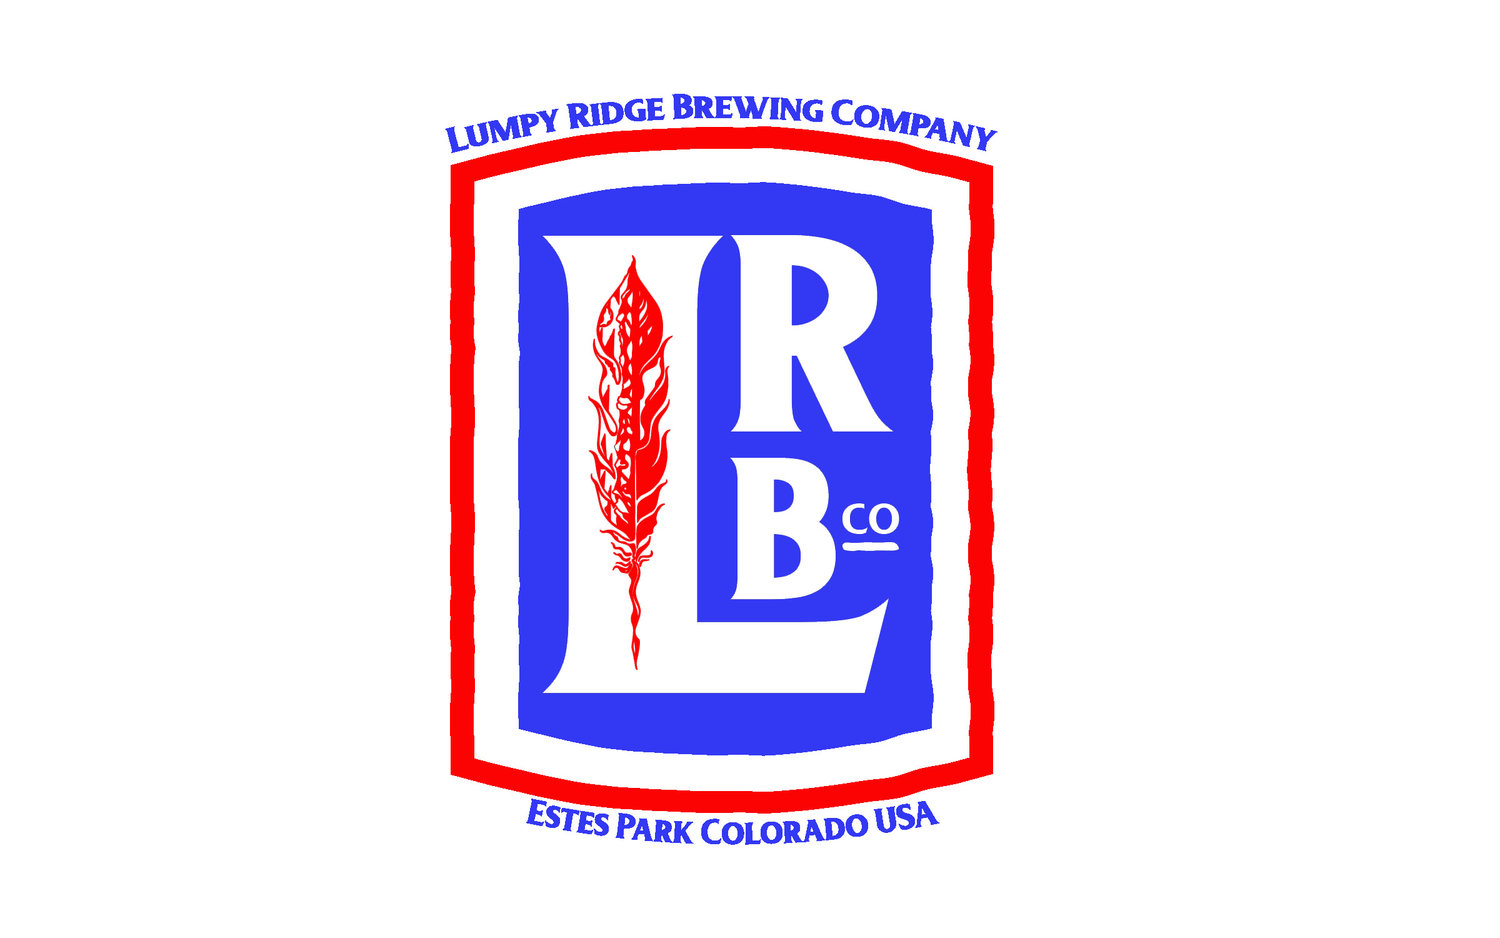 Lumpy Ridge Brewing Co.